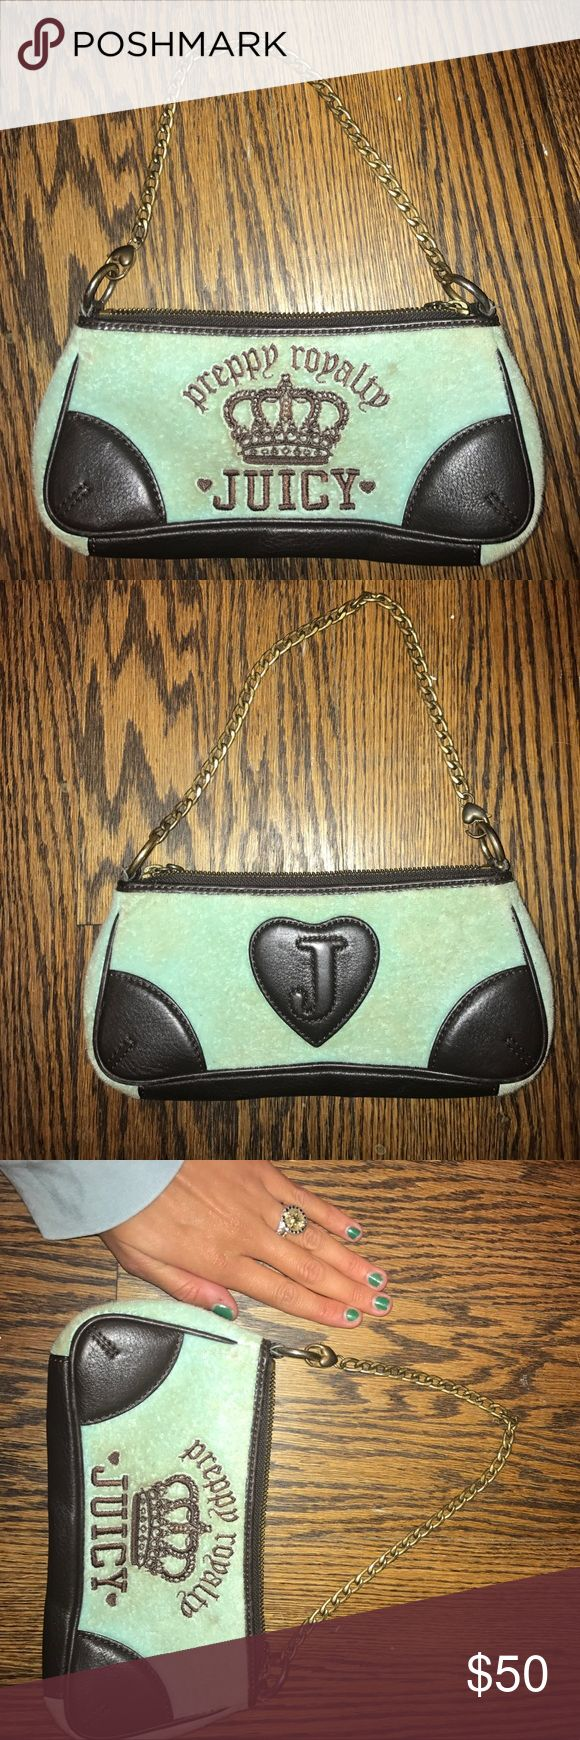 """Juicy Couture Purse Juicy Couture baby blue terrycloth purse with chocolate brown monogramming and leather. Gold chain and zipper. The front reads """"preppy royalty"""" then has a crown then under says """"JUICY"""". The back has a leather heart with a """"J"""" on it. Good condition. Some signs of wear on the terrycloth because it is so light (see photos) but the inside is like new! Super cute!!! Juicy Couture Bags Mini Bags"""